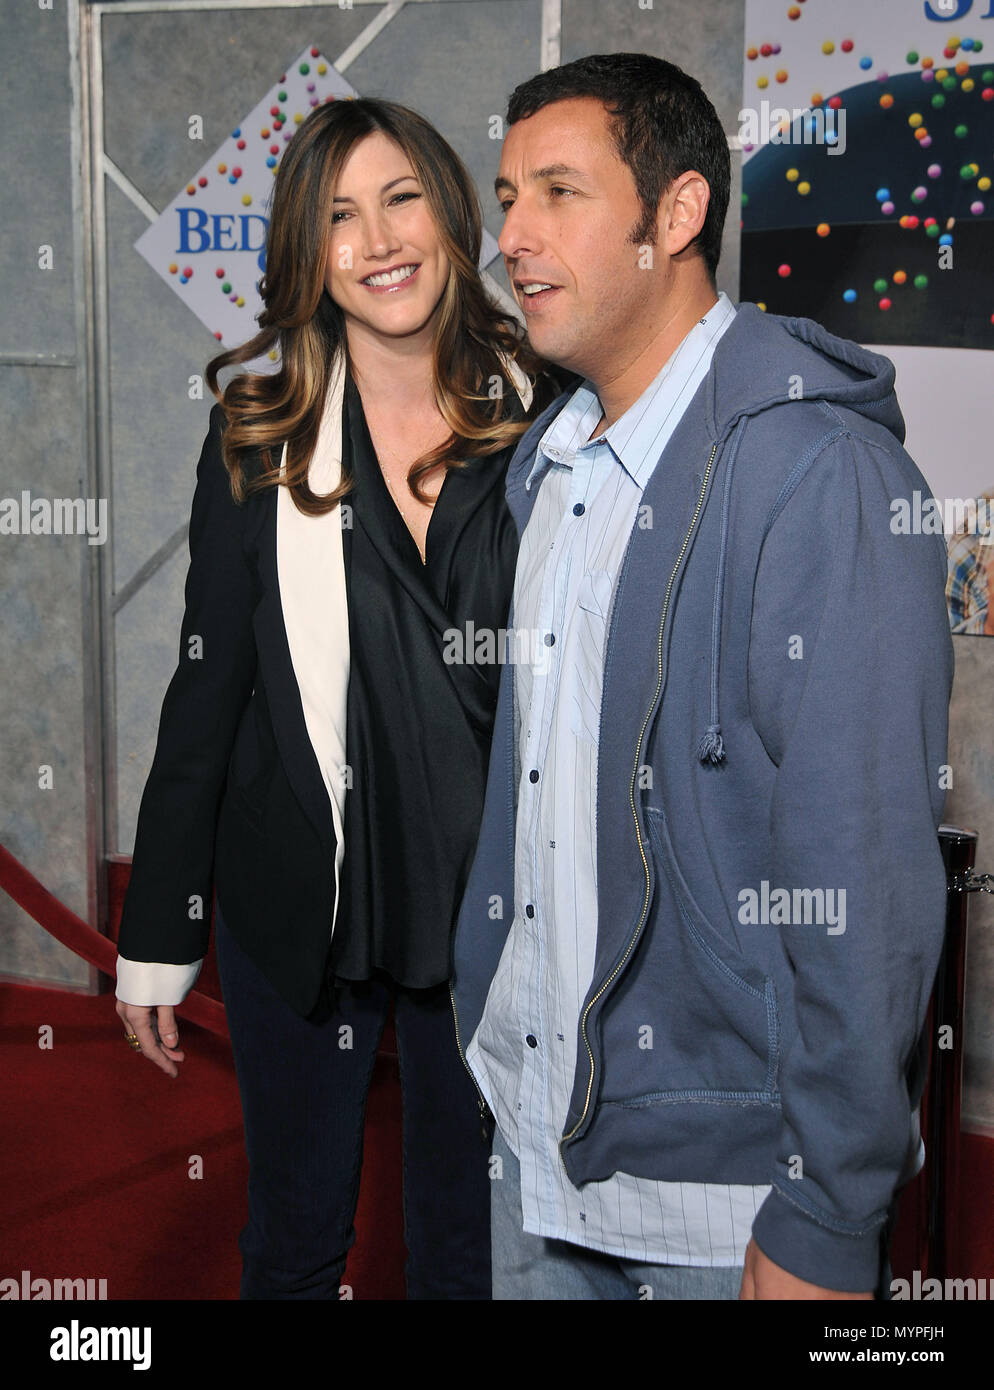 Adam Sandler and wife - Bedtime Stories Premiere at the El